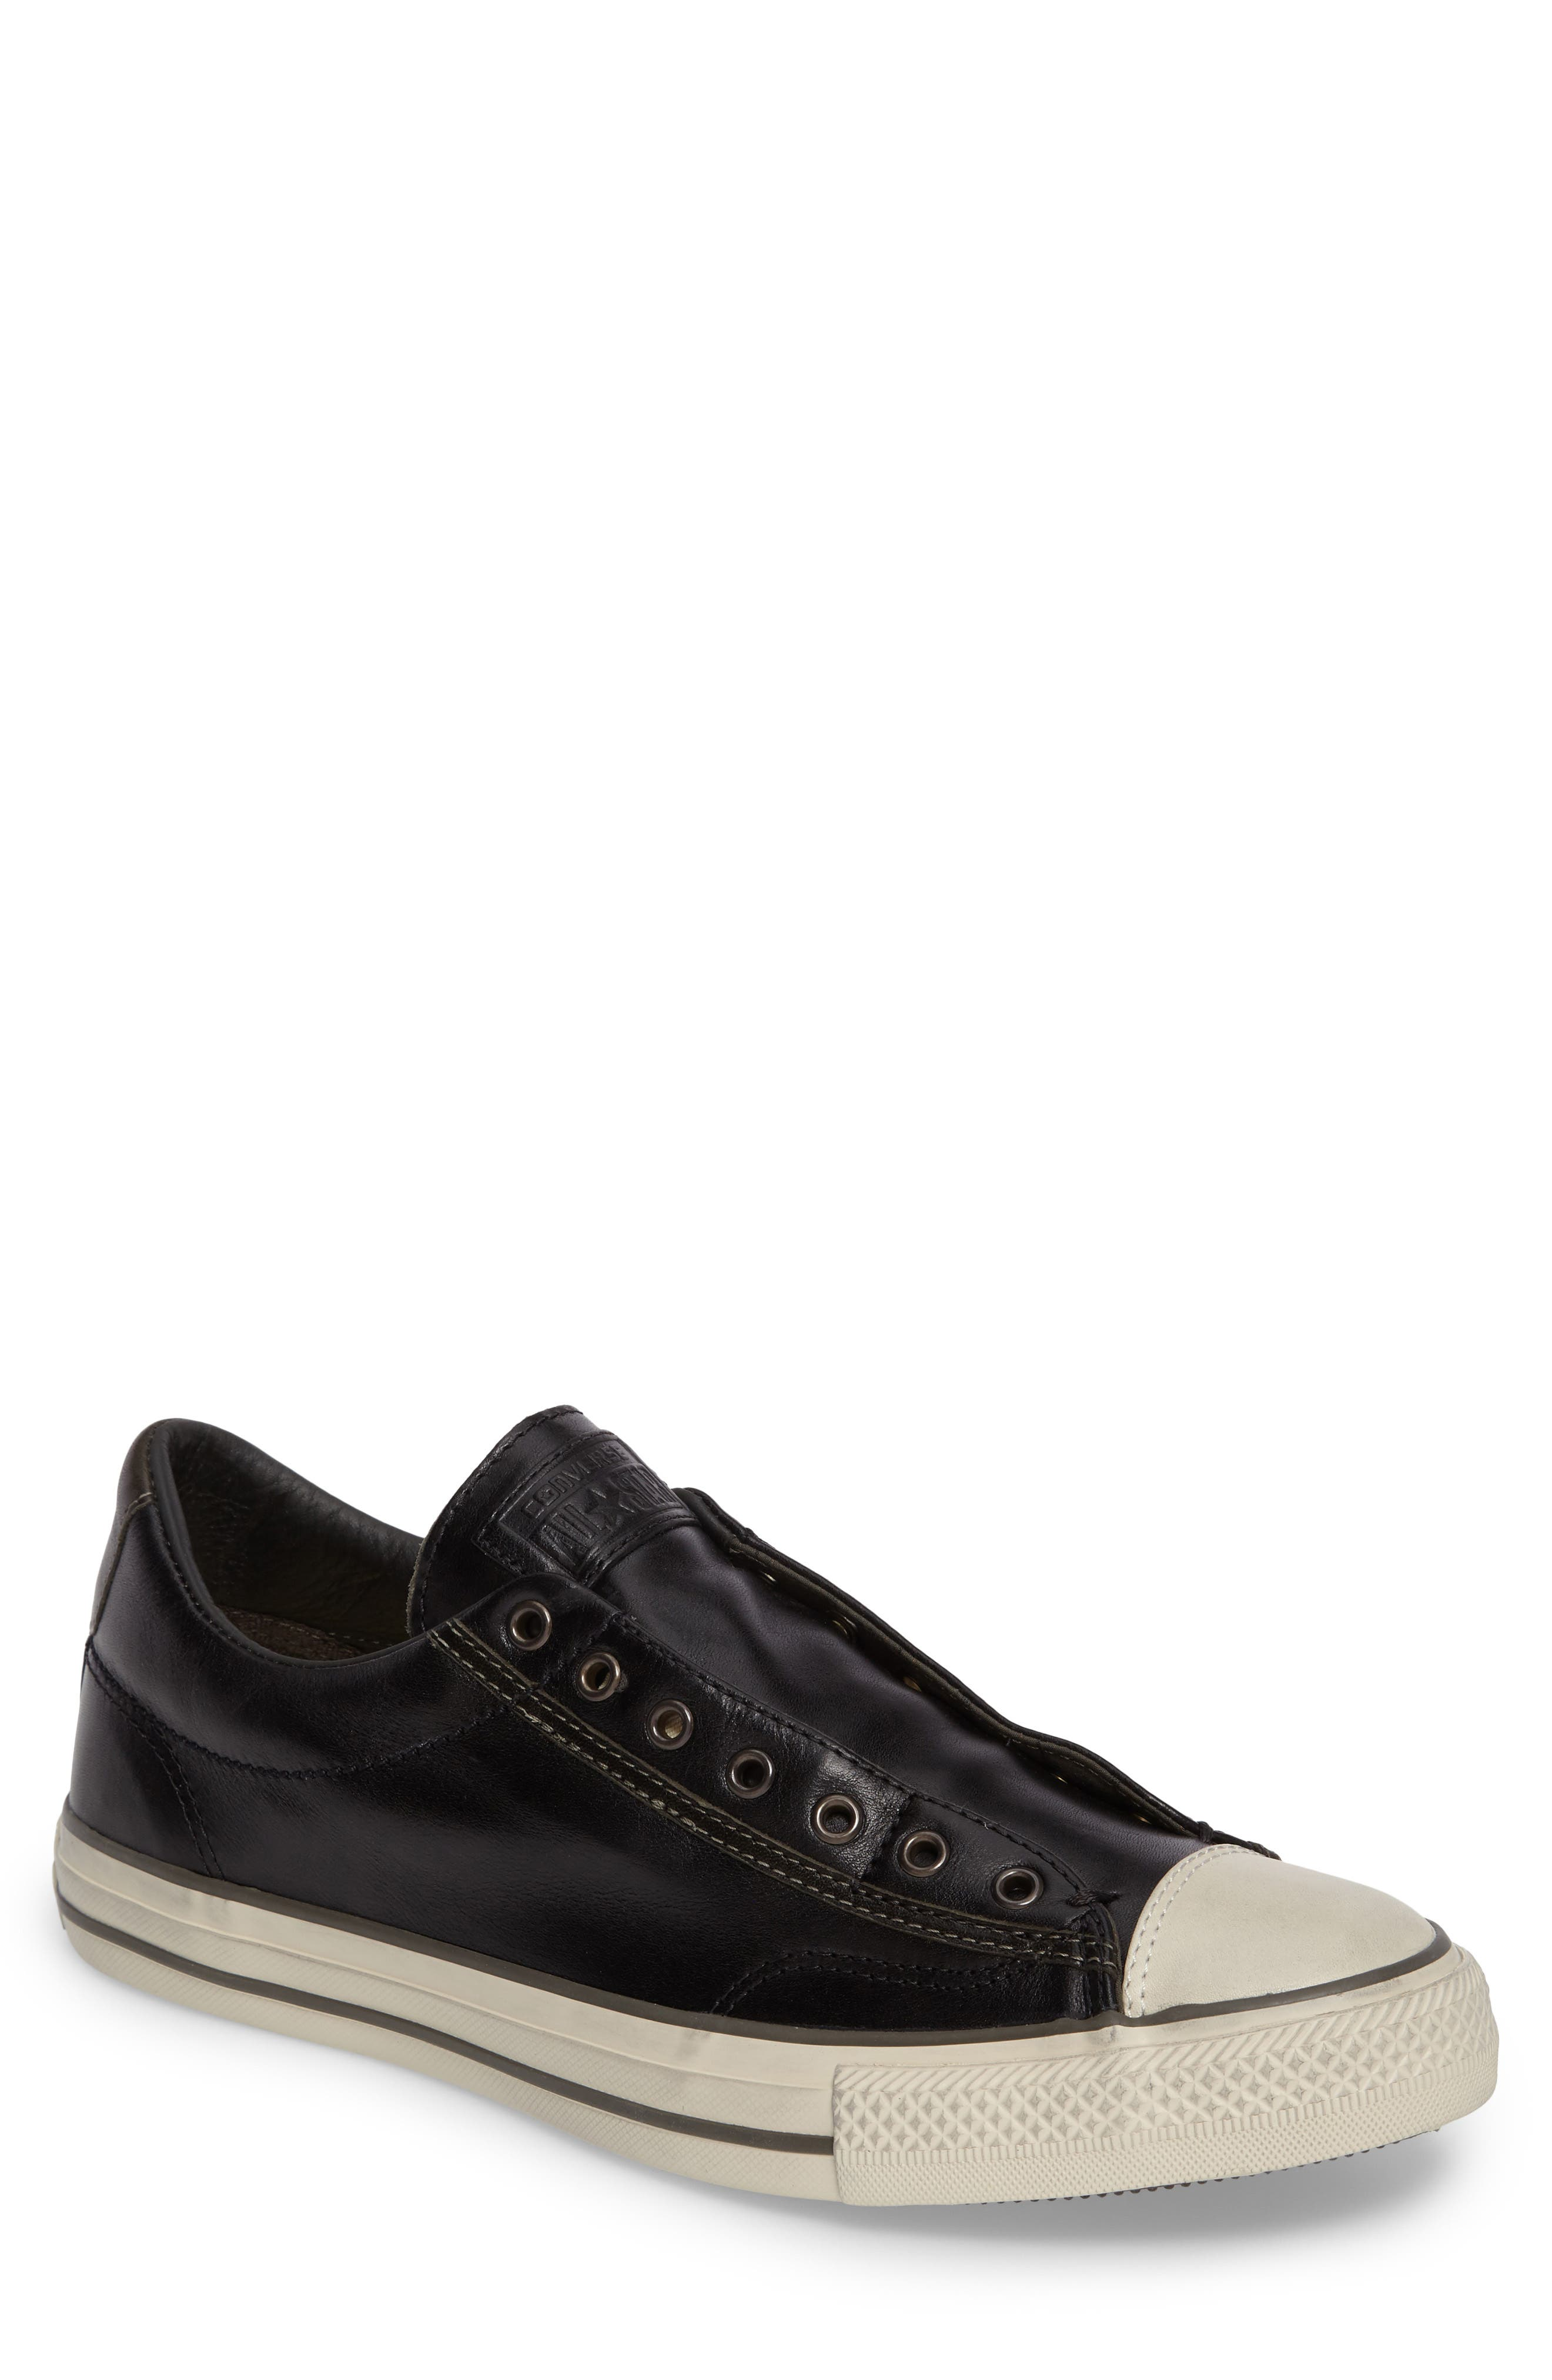 by John Varvatos Sneaker,                             Main thumbnail 1, color,                             001